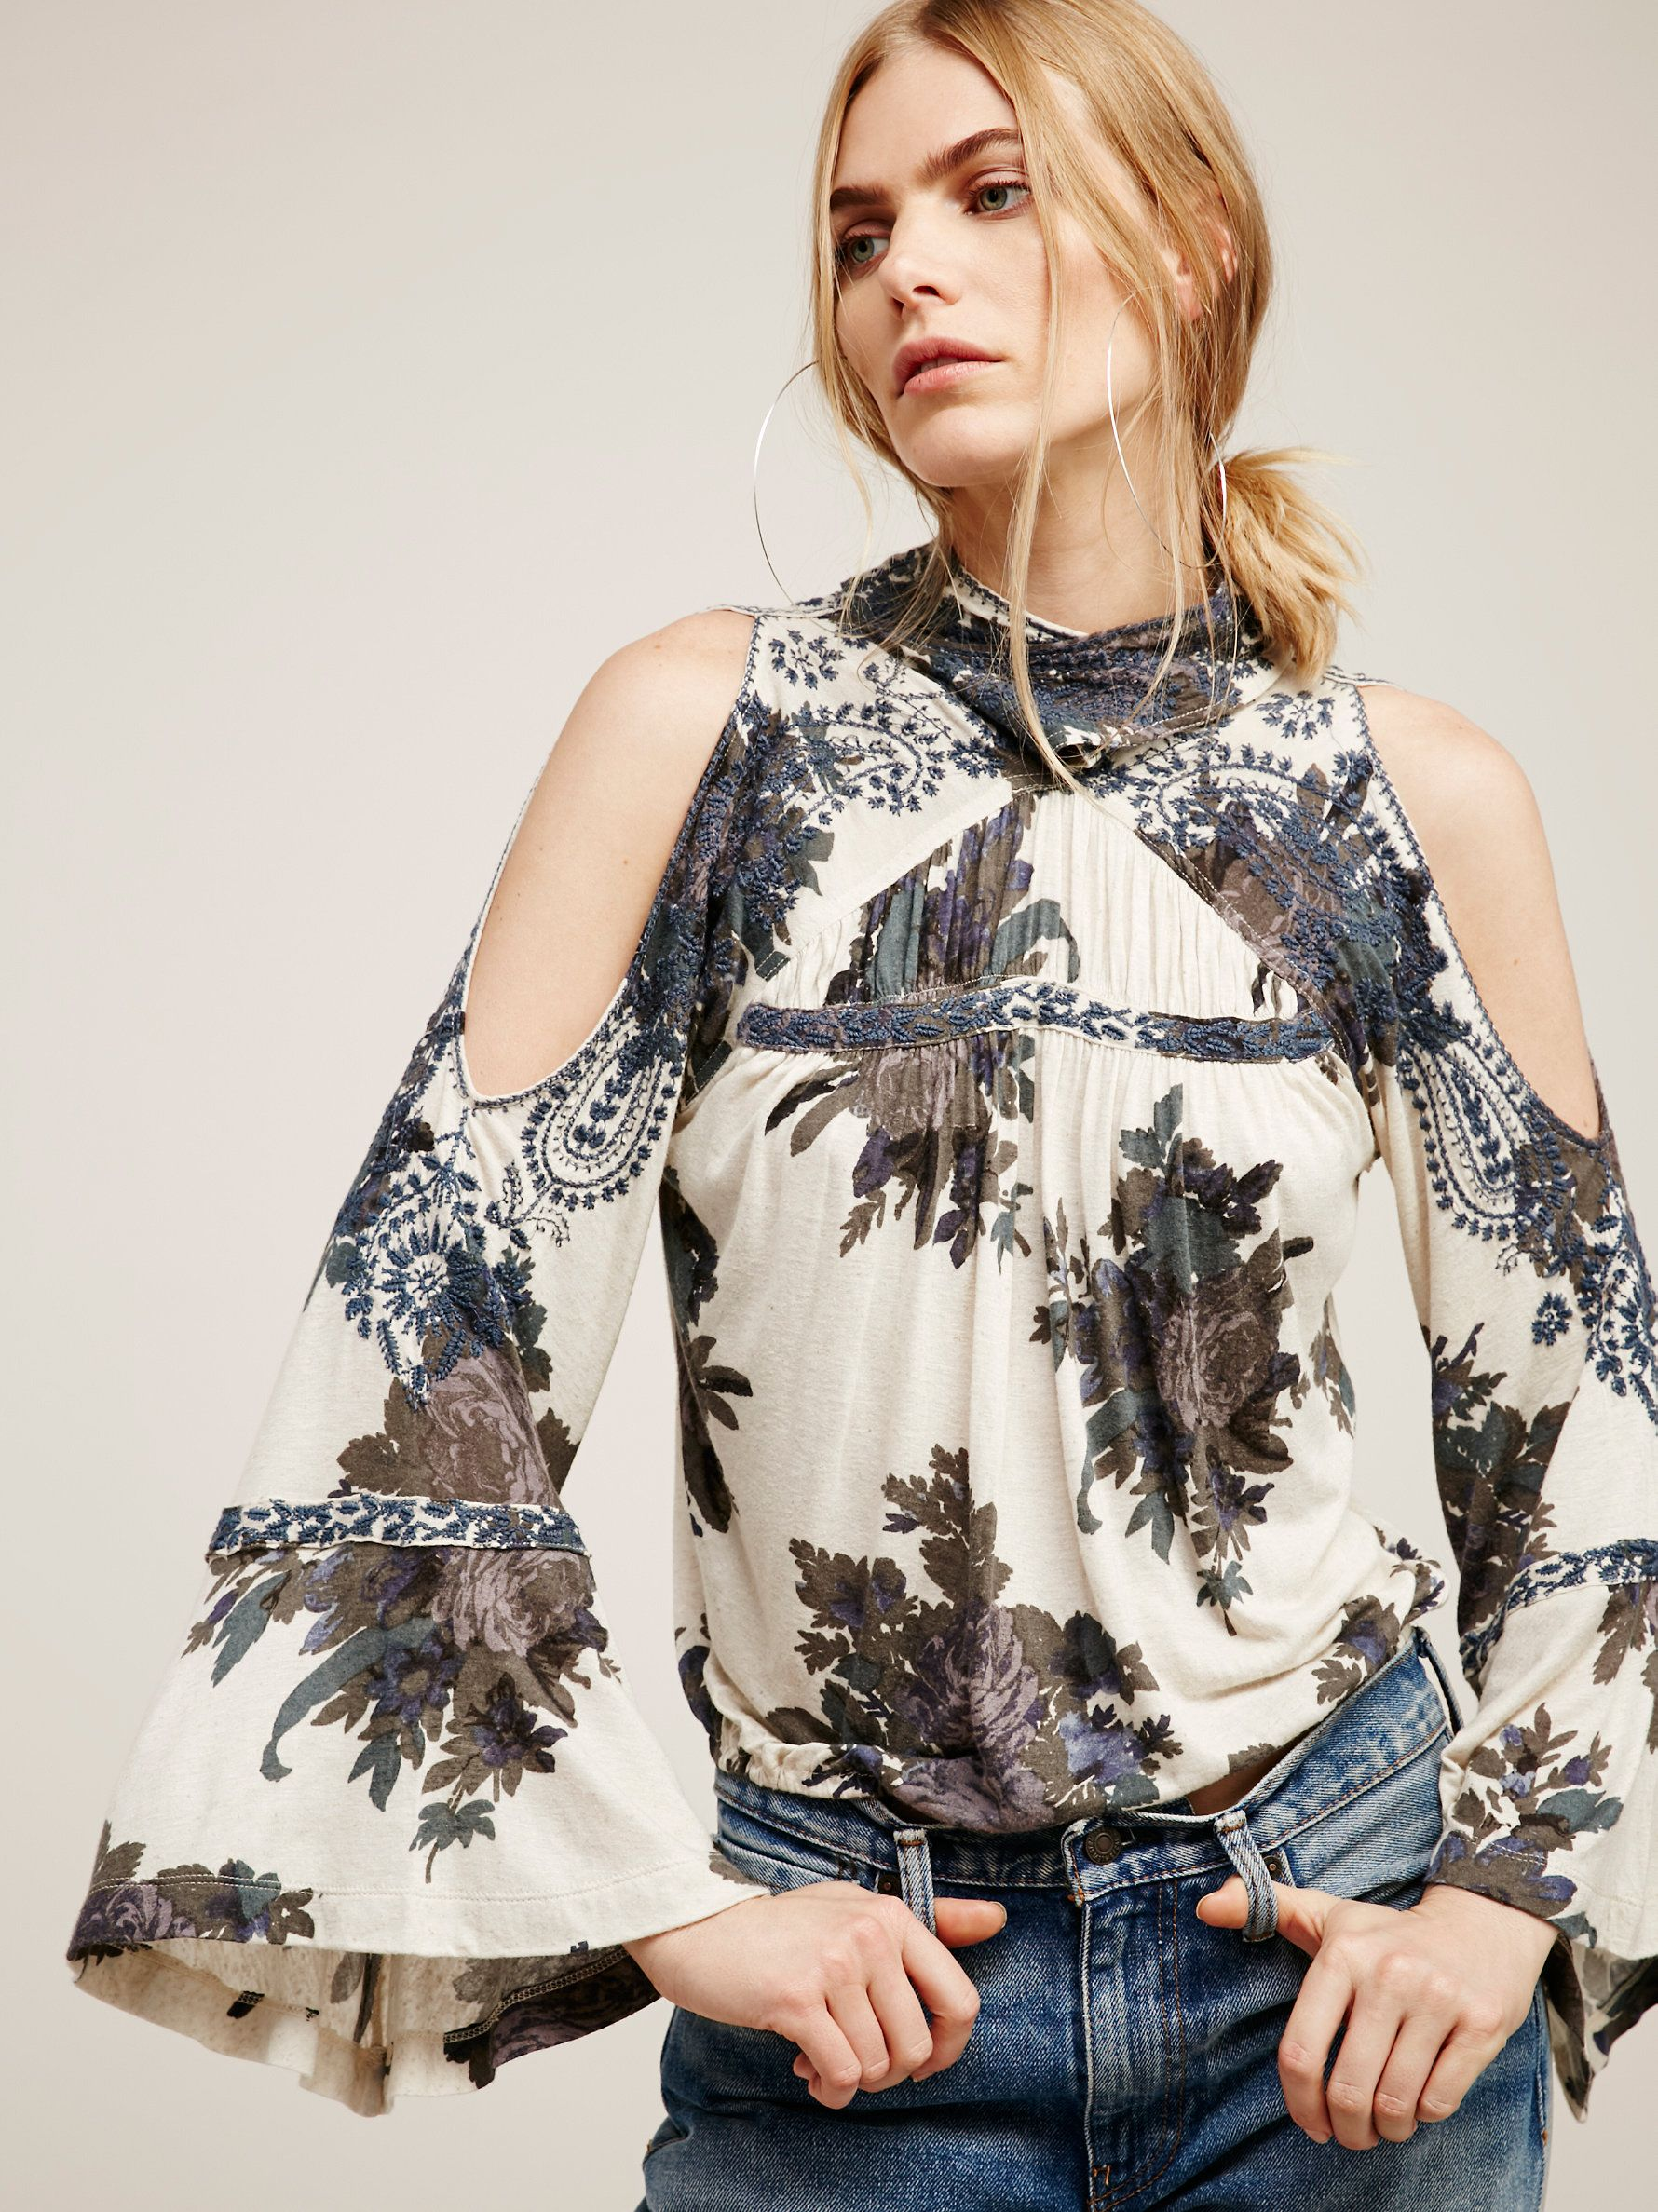 Bainbridge top soft floral printed top with beautiful embroidered